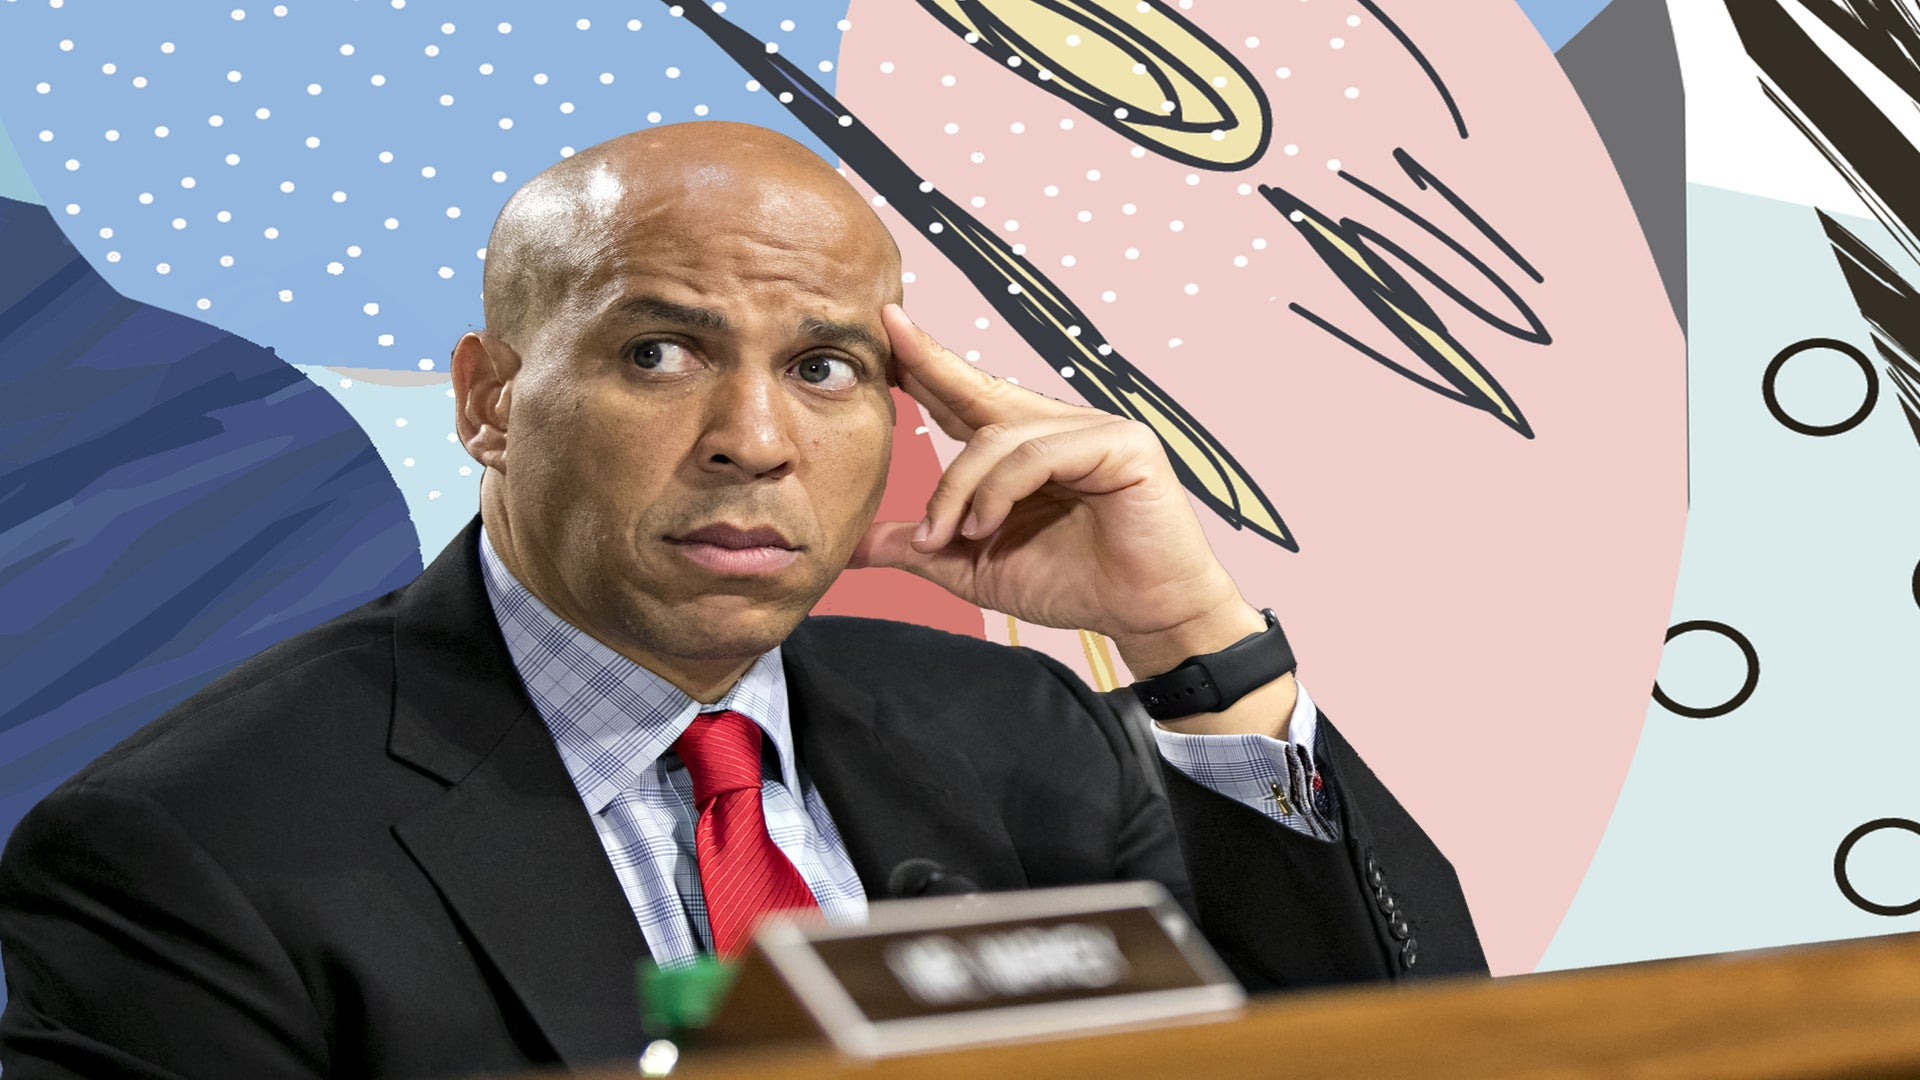 Cory Booker: It's Time To Get Covered — What We Have To Lose If The Trump Administration Limits Health Care